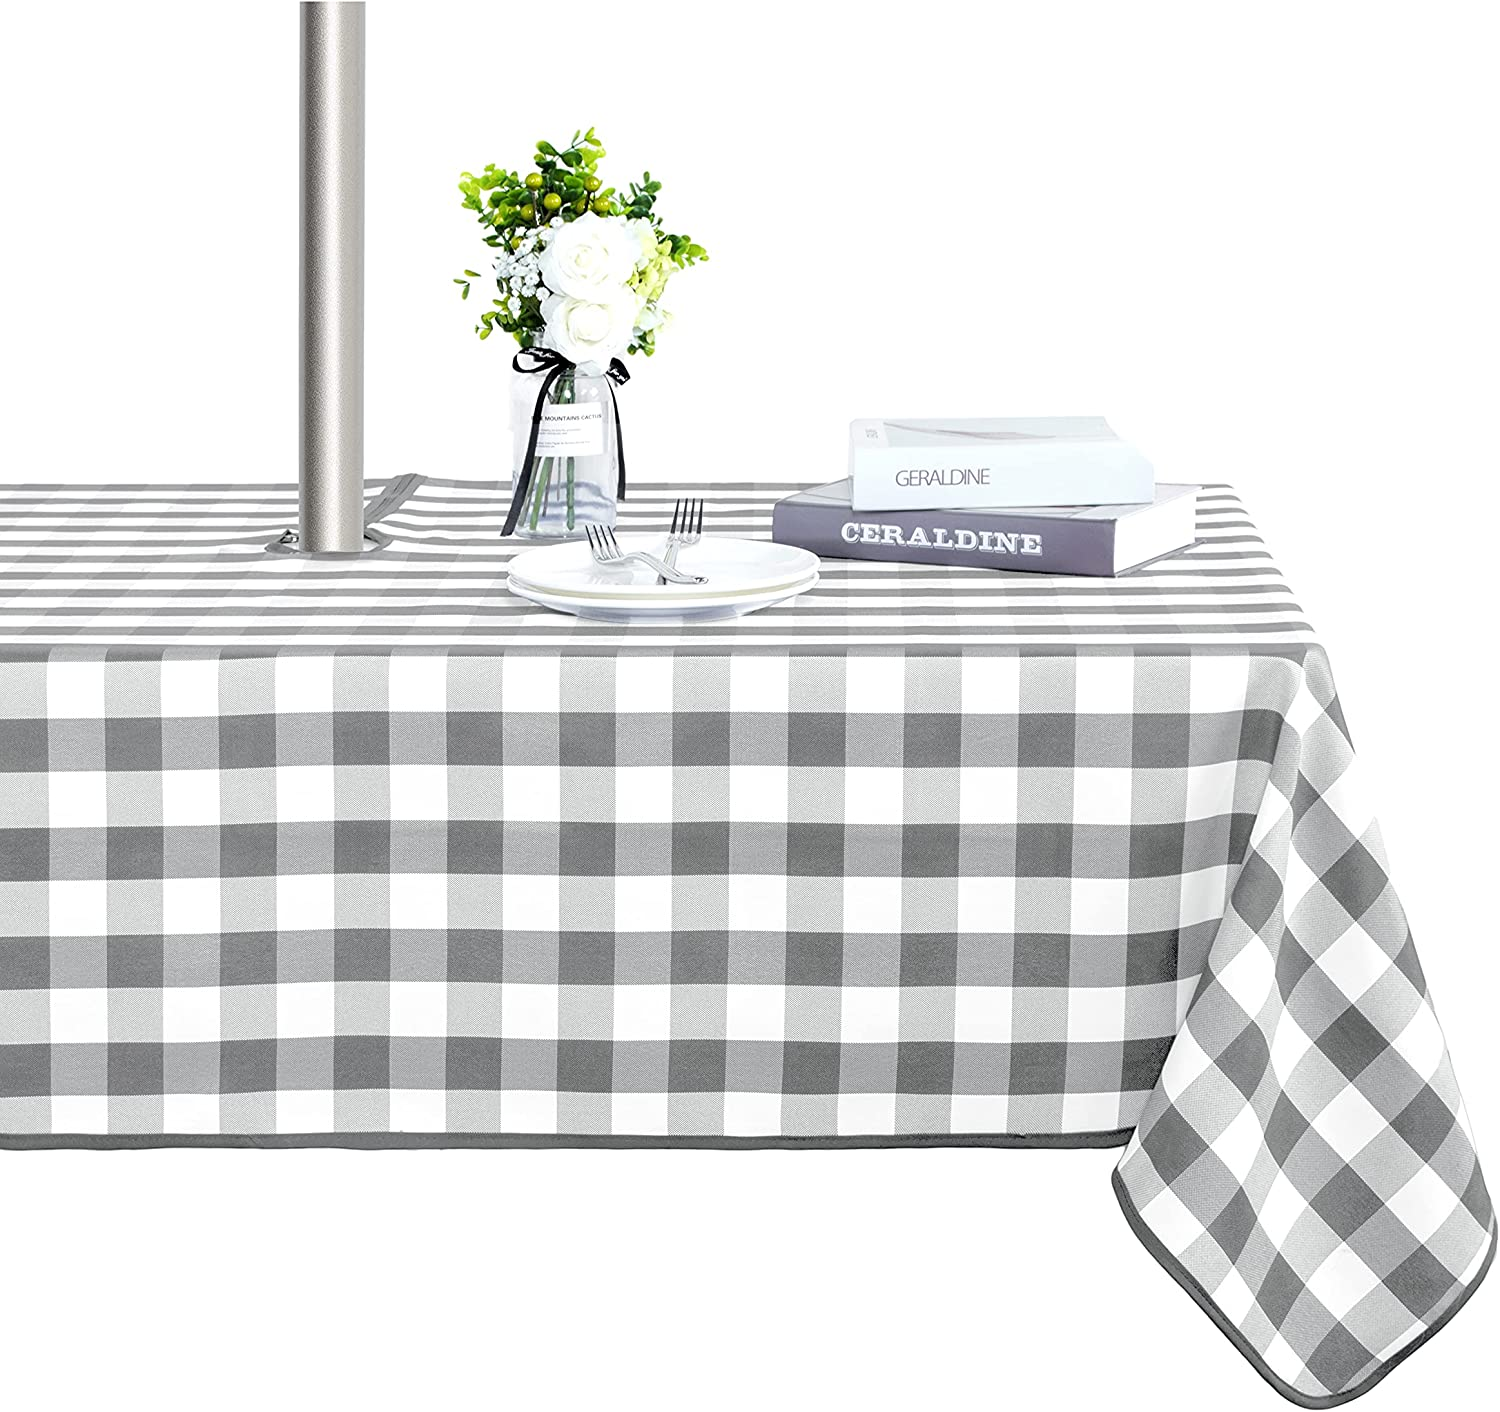 LUSHVIDA famous Checkered Table Cover Large-scale sale Outdoor - Tablecloth Indoor and W